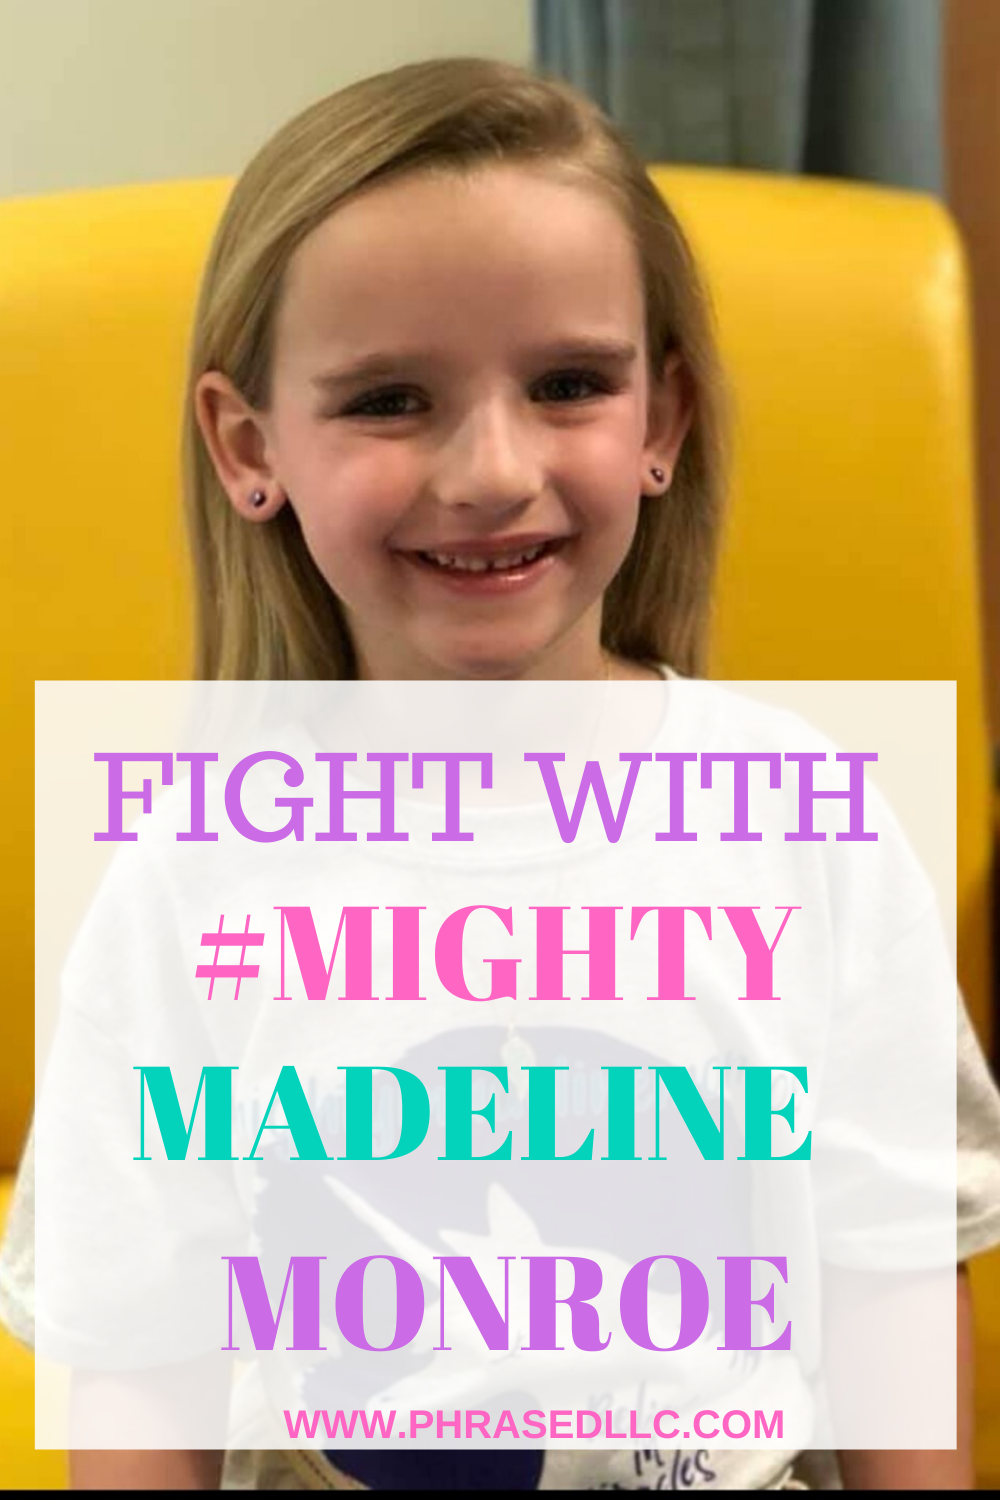 Mighty Madeline Monroe, a child with an inoperable brain tumor. fights